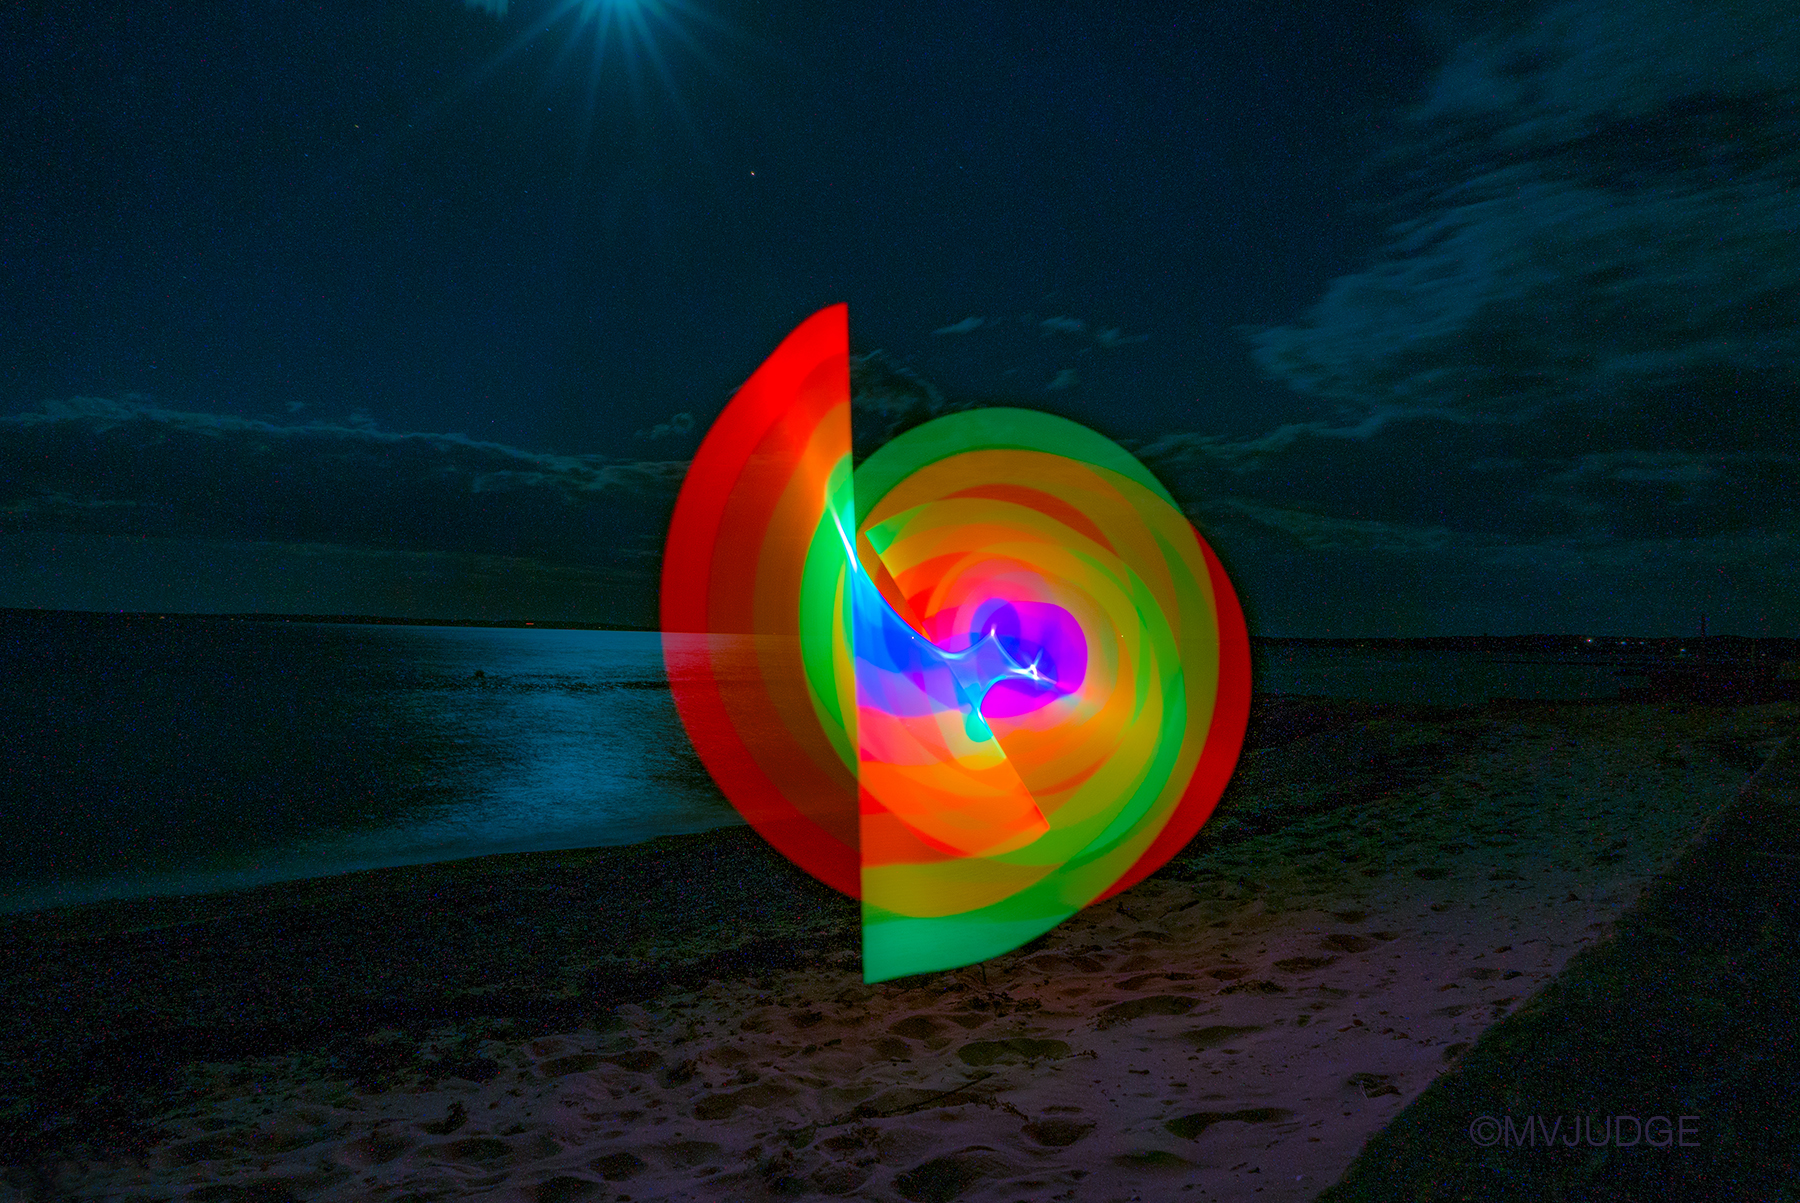 """""""swirl""""   mvjudge©2016  The """"Rainbow Lights the Dark"""" series was created a week after the Orlando nightclub shooting. The beauty of the full moon and the Cape Cod beach reminded me as I swirled the rainbow lights, that the victims, so many young lives, will never enjoy another full moon, or a beach, or the joy of creating and sharing their vision with the world. Each time I look through these photos I'm stricken with grief, and hope that we all can wave our rainbow in unity and pride.  All rights reserved @mvjudge 2016"""